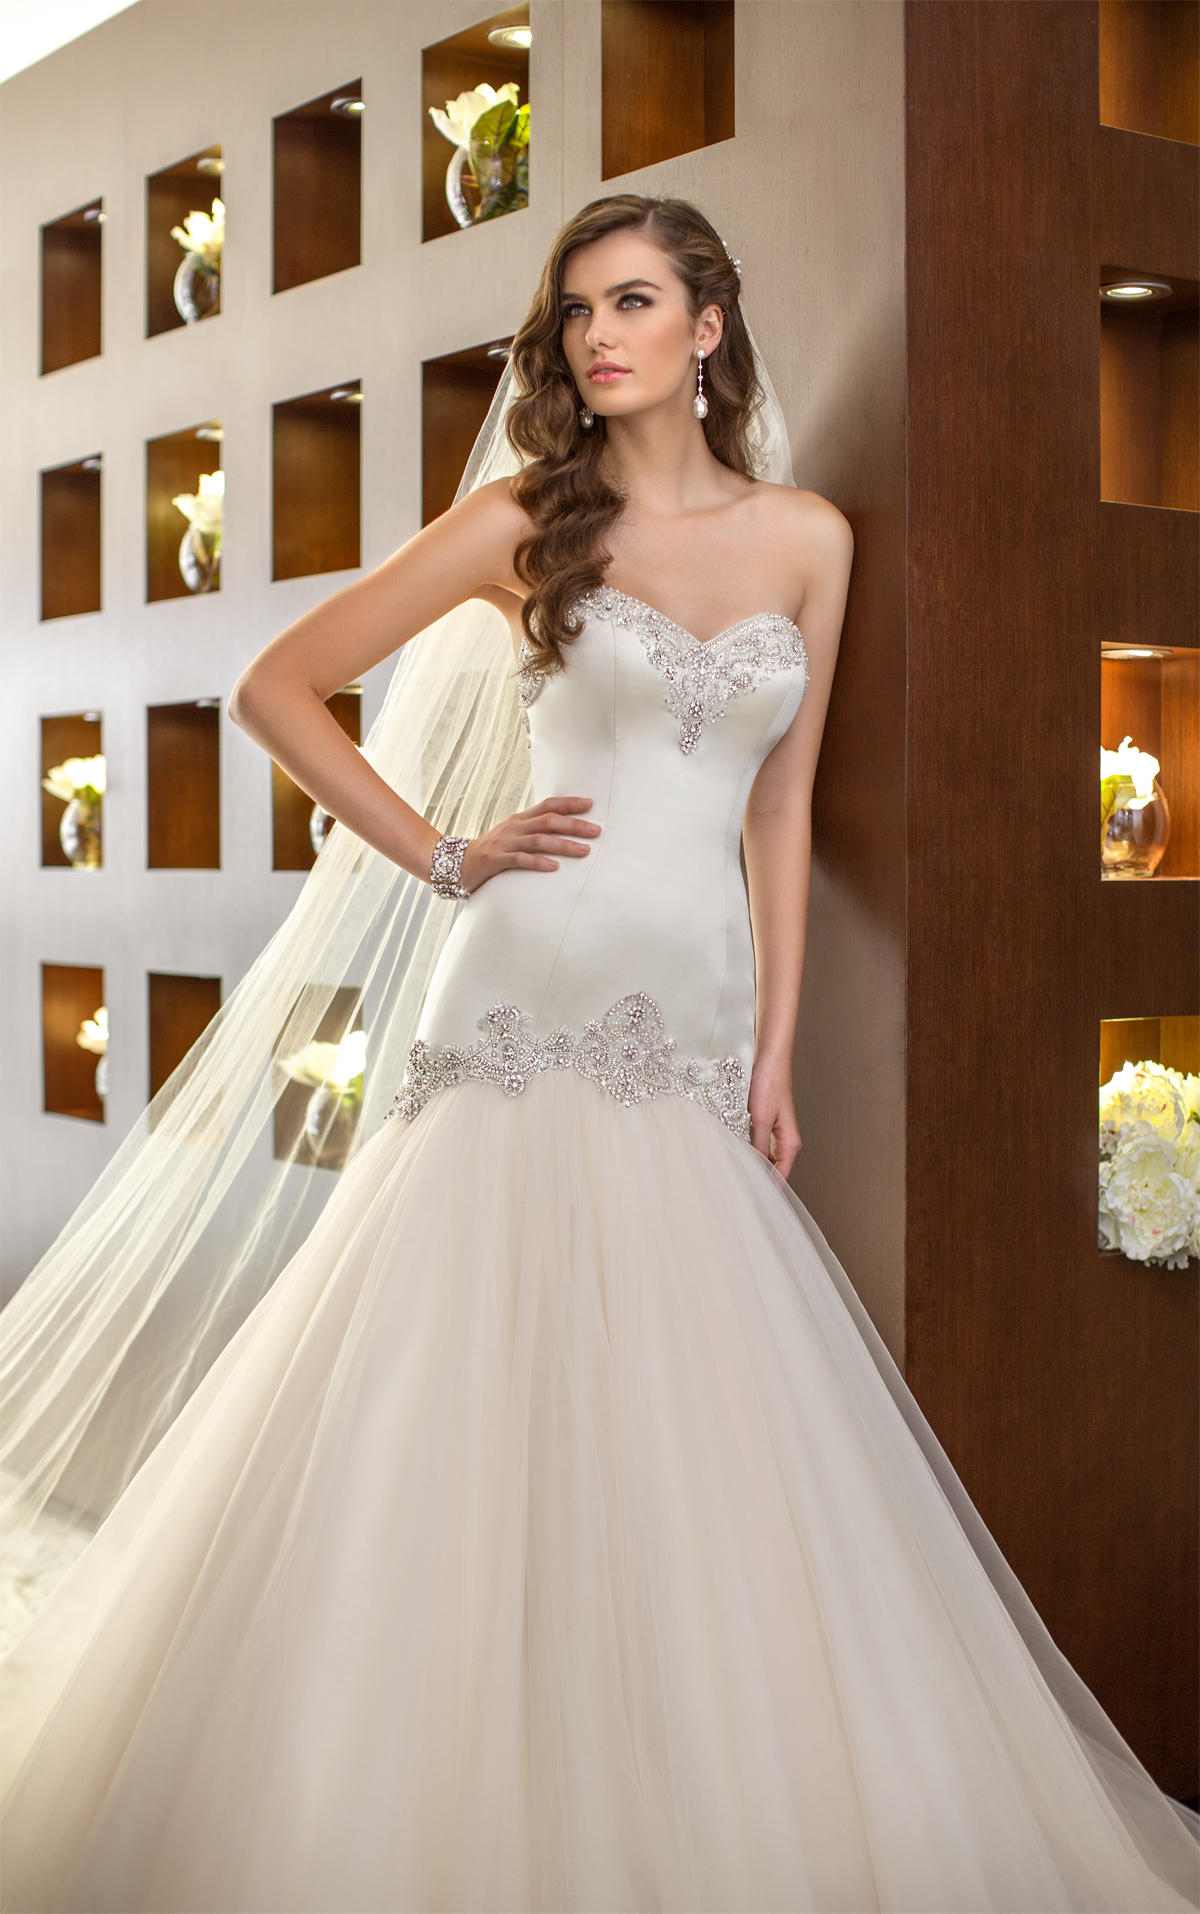 The Best Gowns from The Most InDemand Wedding Dress Designers  MODwedding